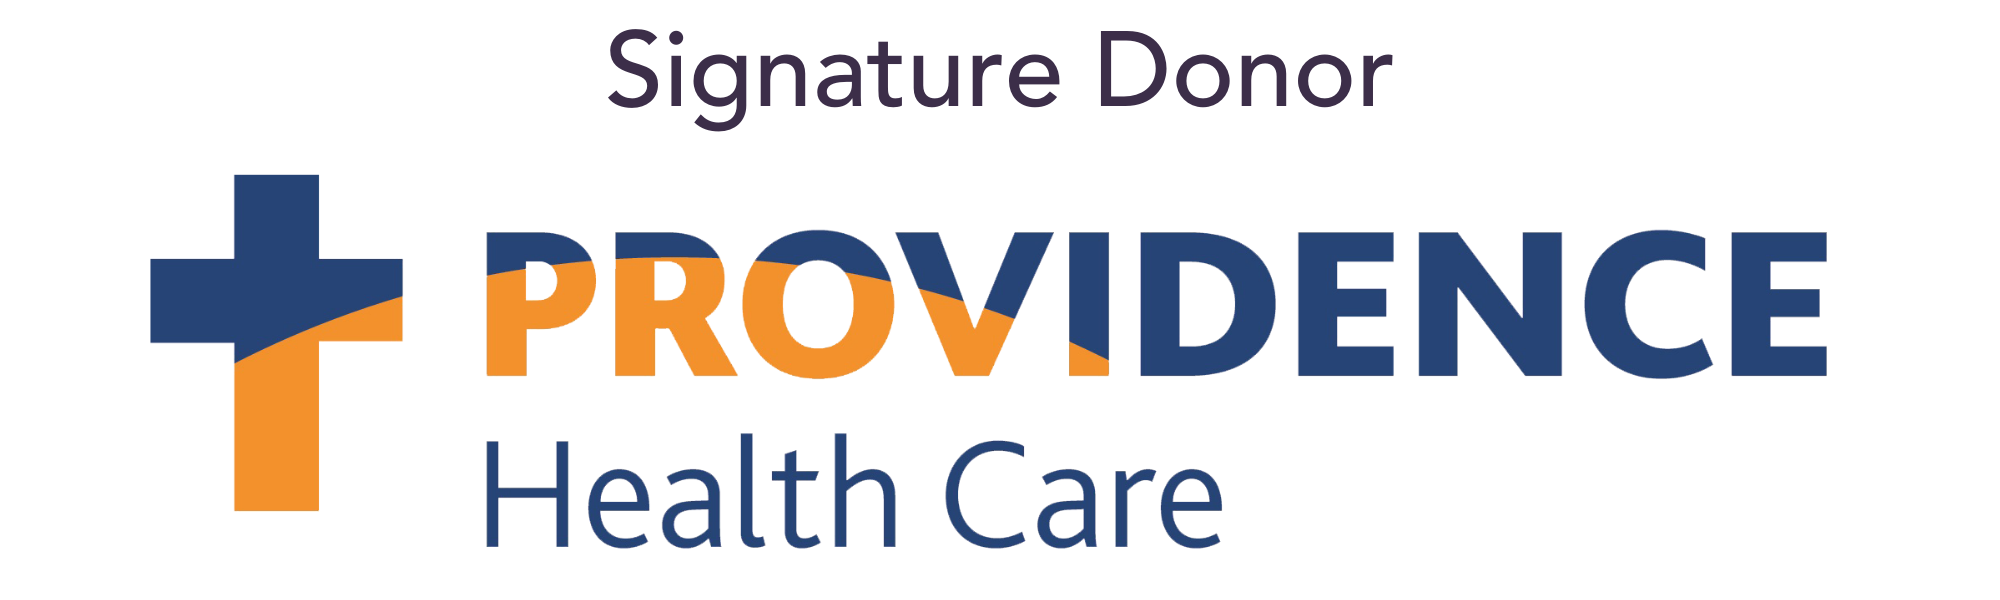 Signature Donor